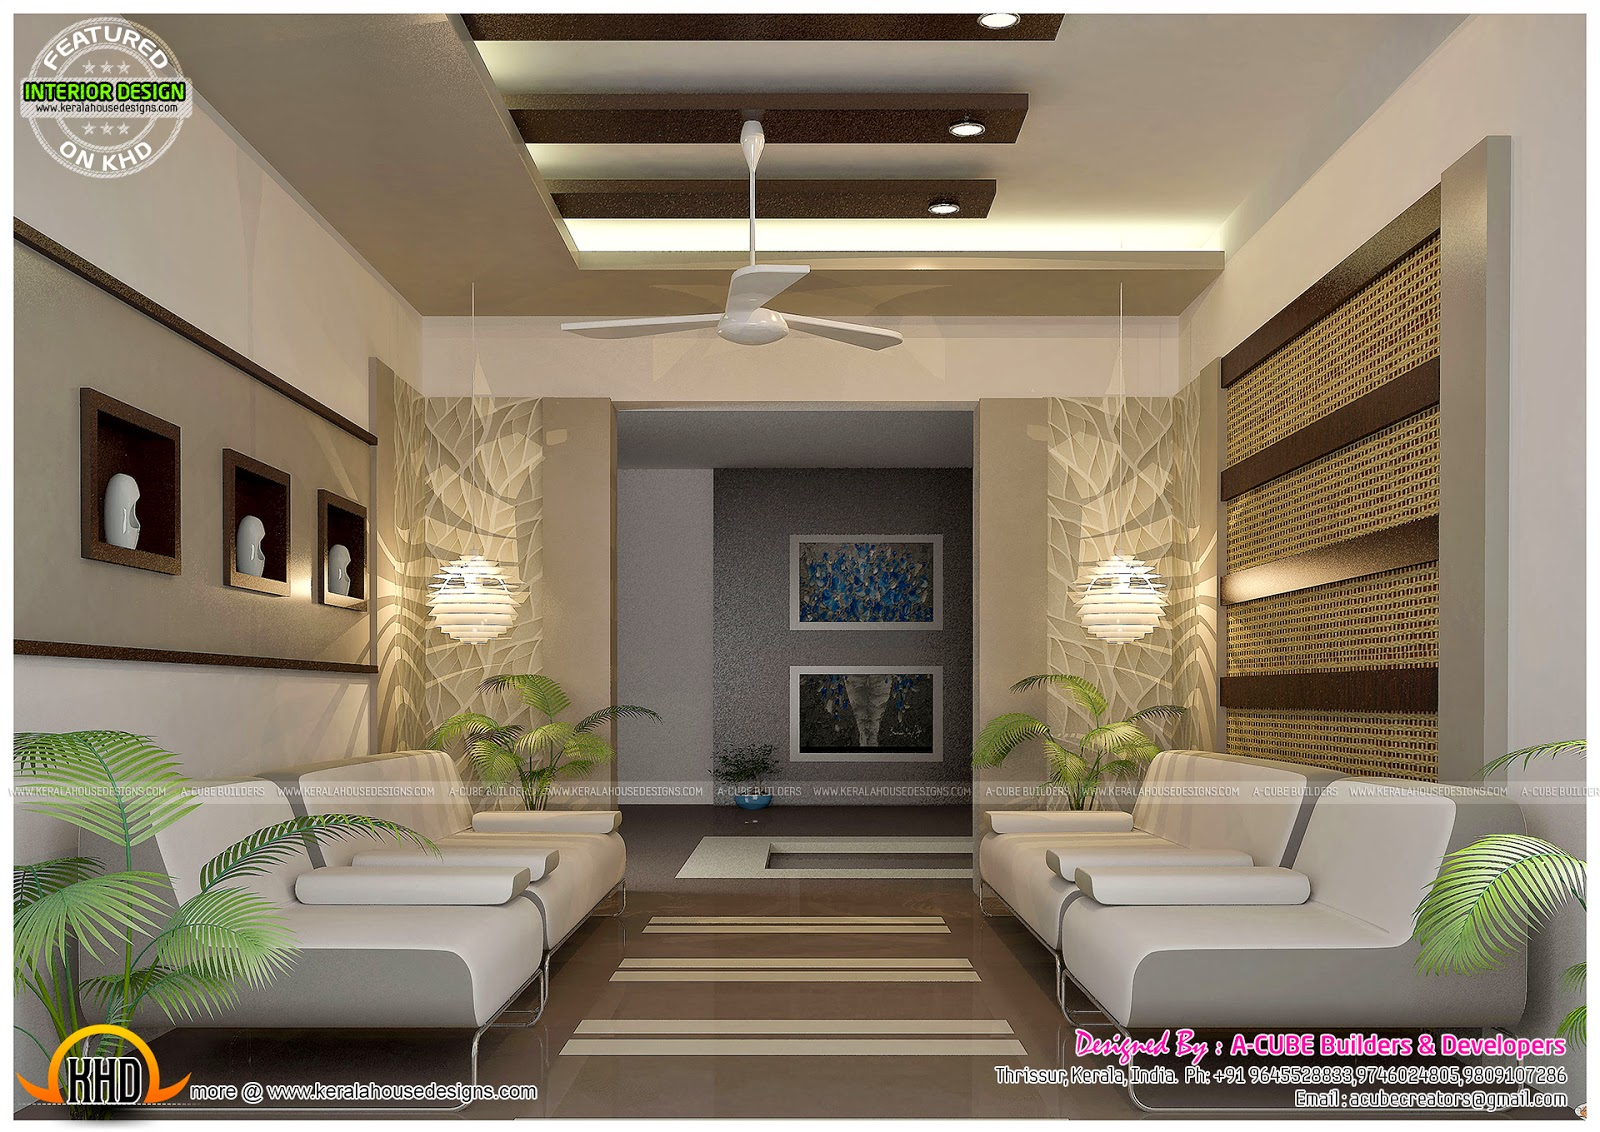 Pooja living home gym and office interiors kerala home for Office interior design ideas in india